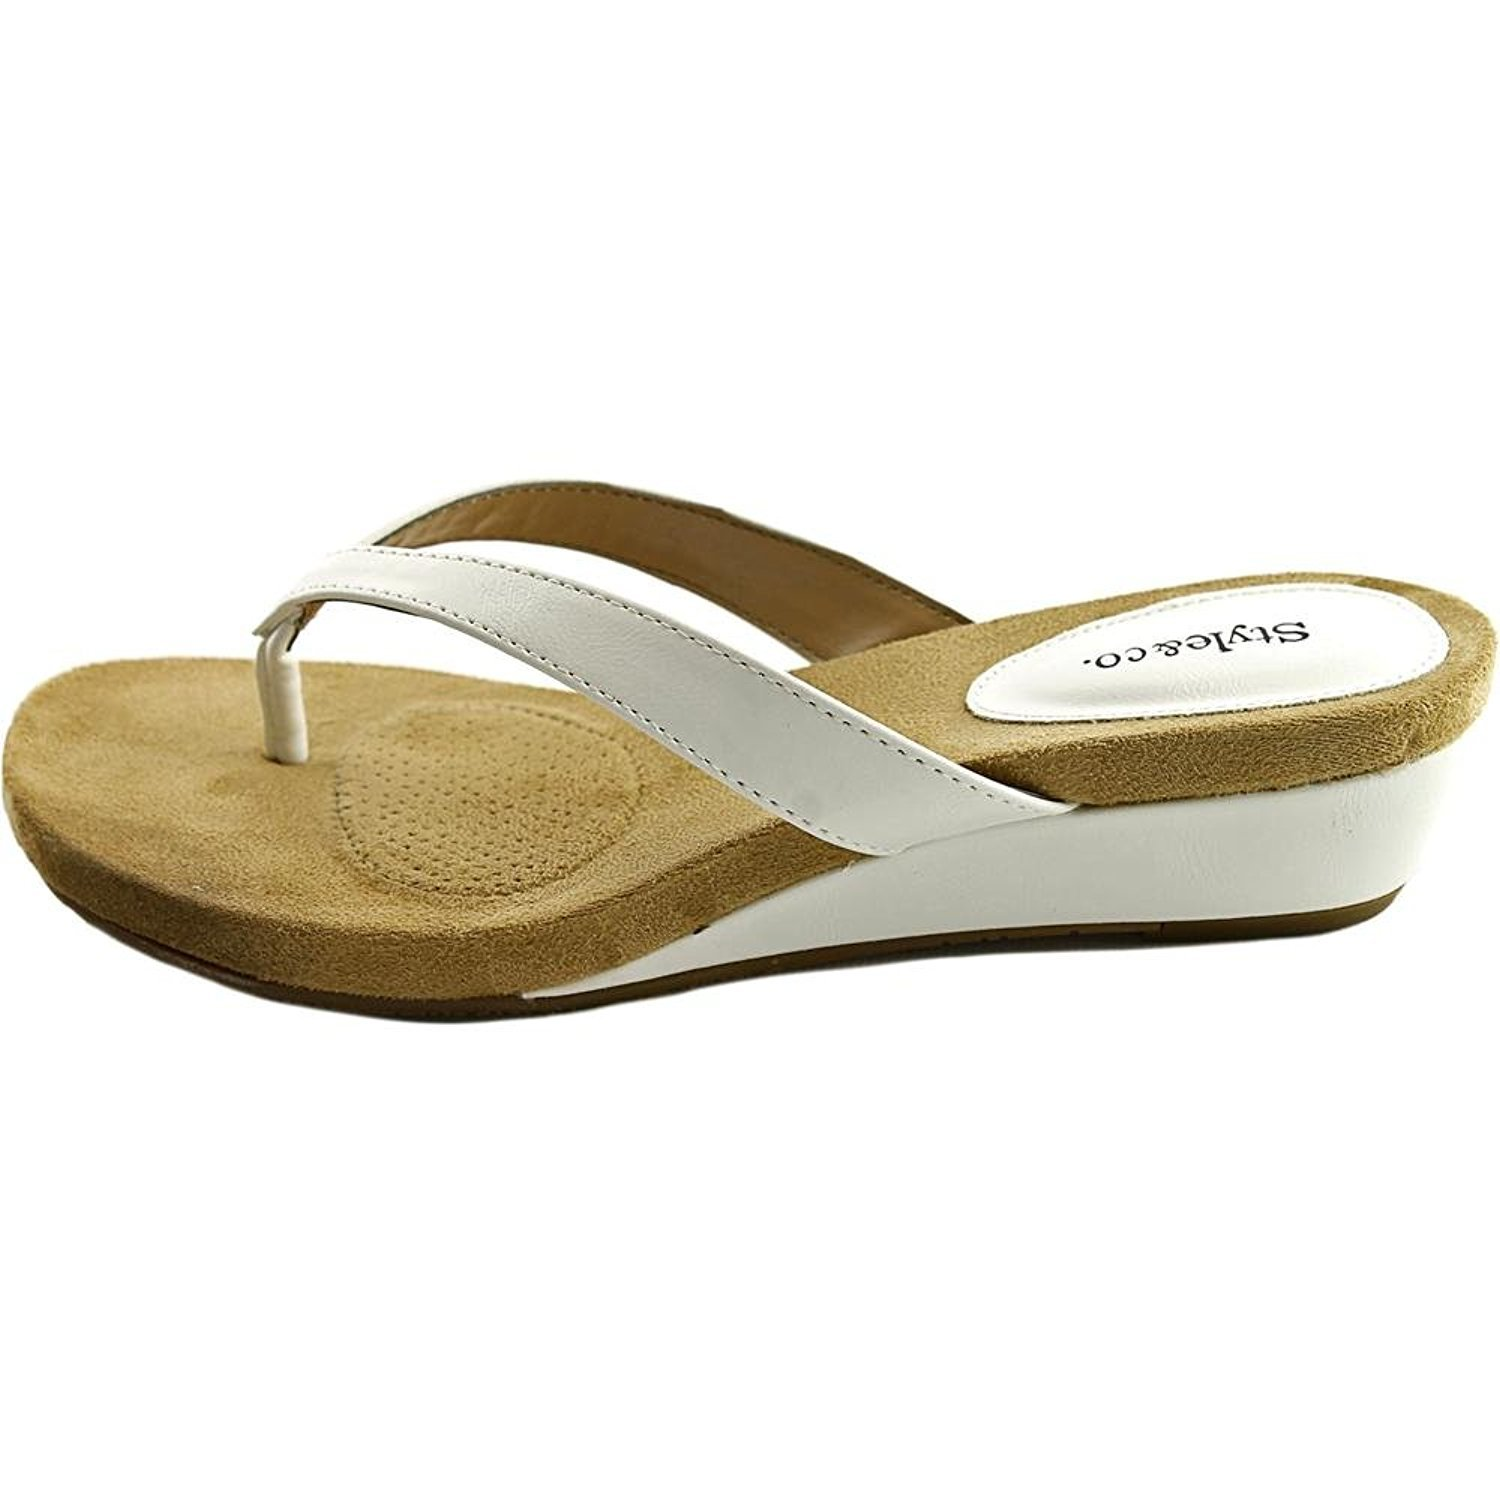 Style & Co. Womens Haloe2 Open Toe Casual Slide Sandals, White, Size 7.0